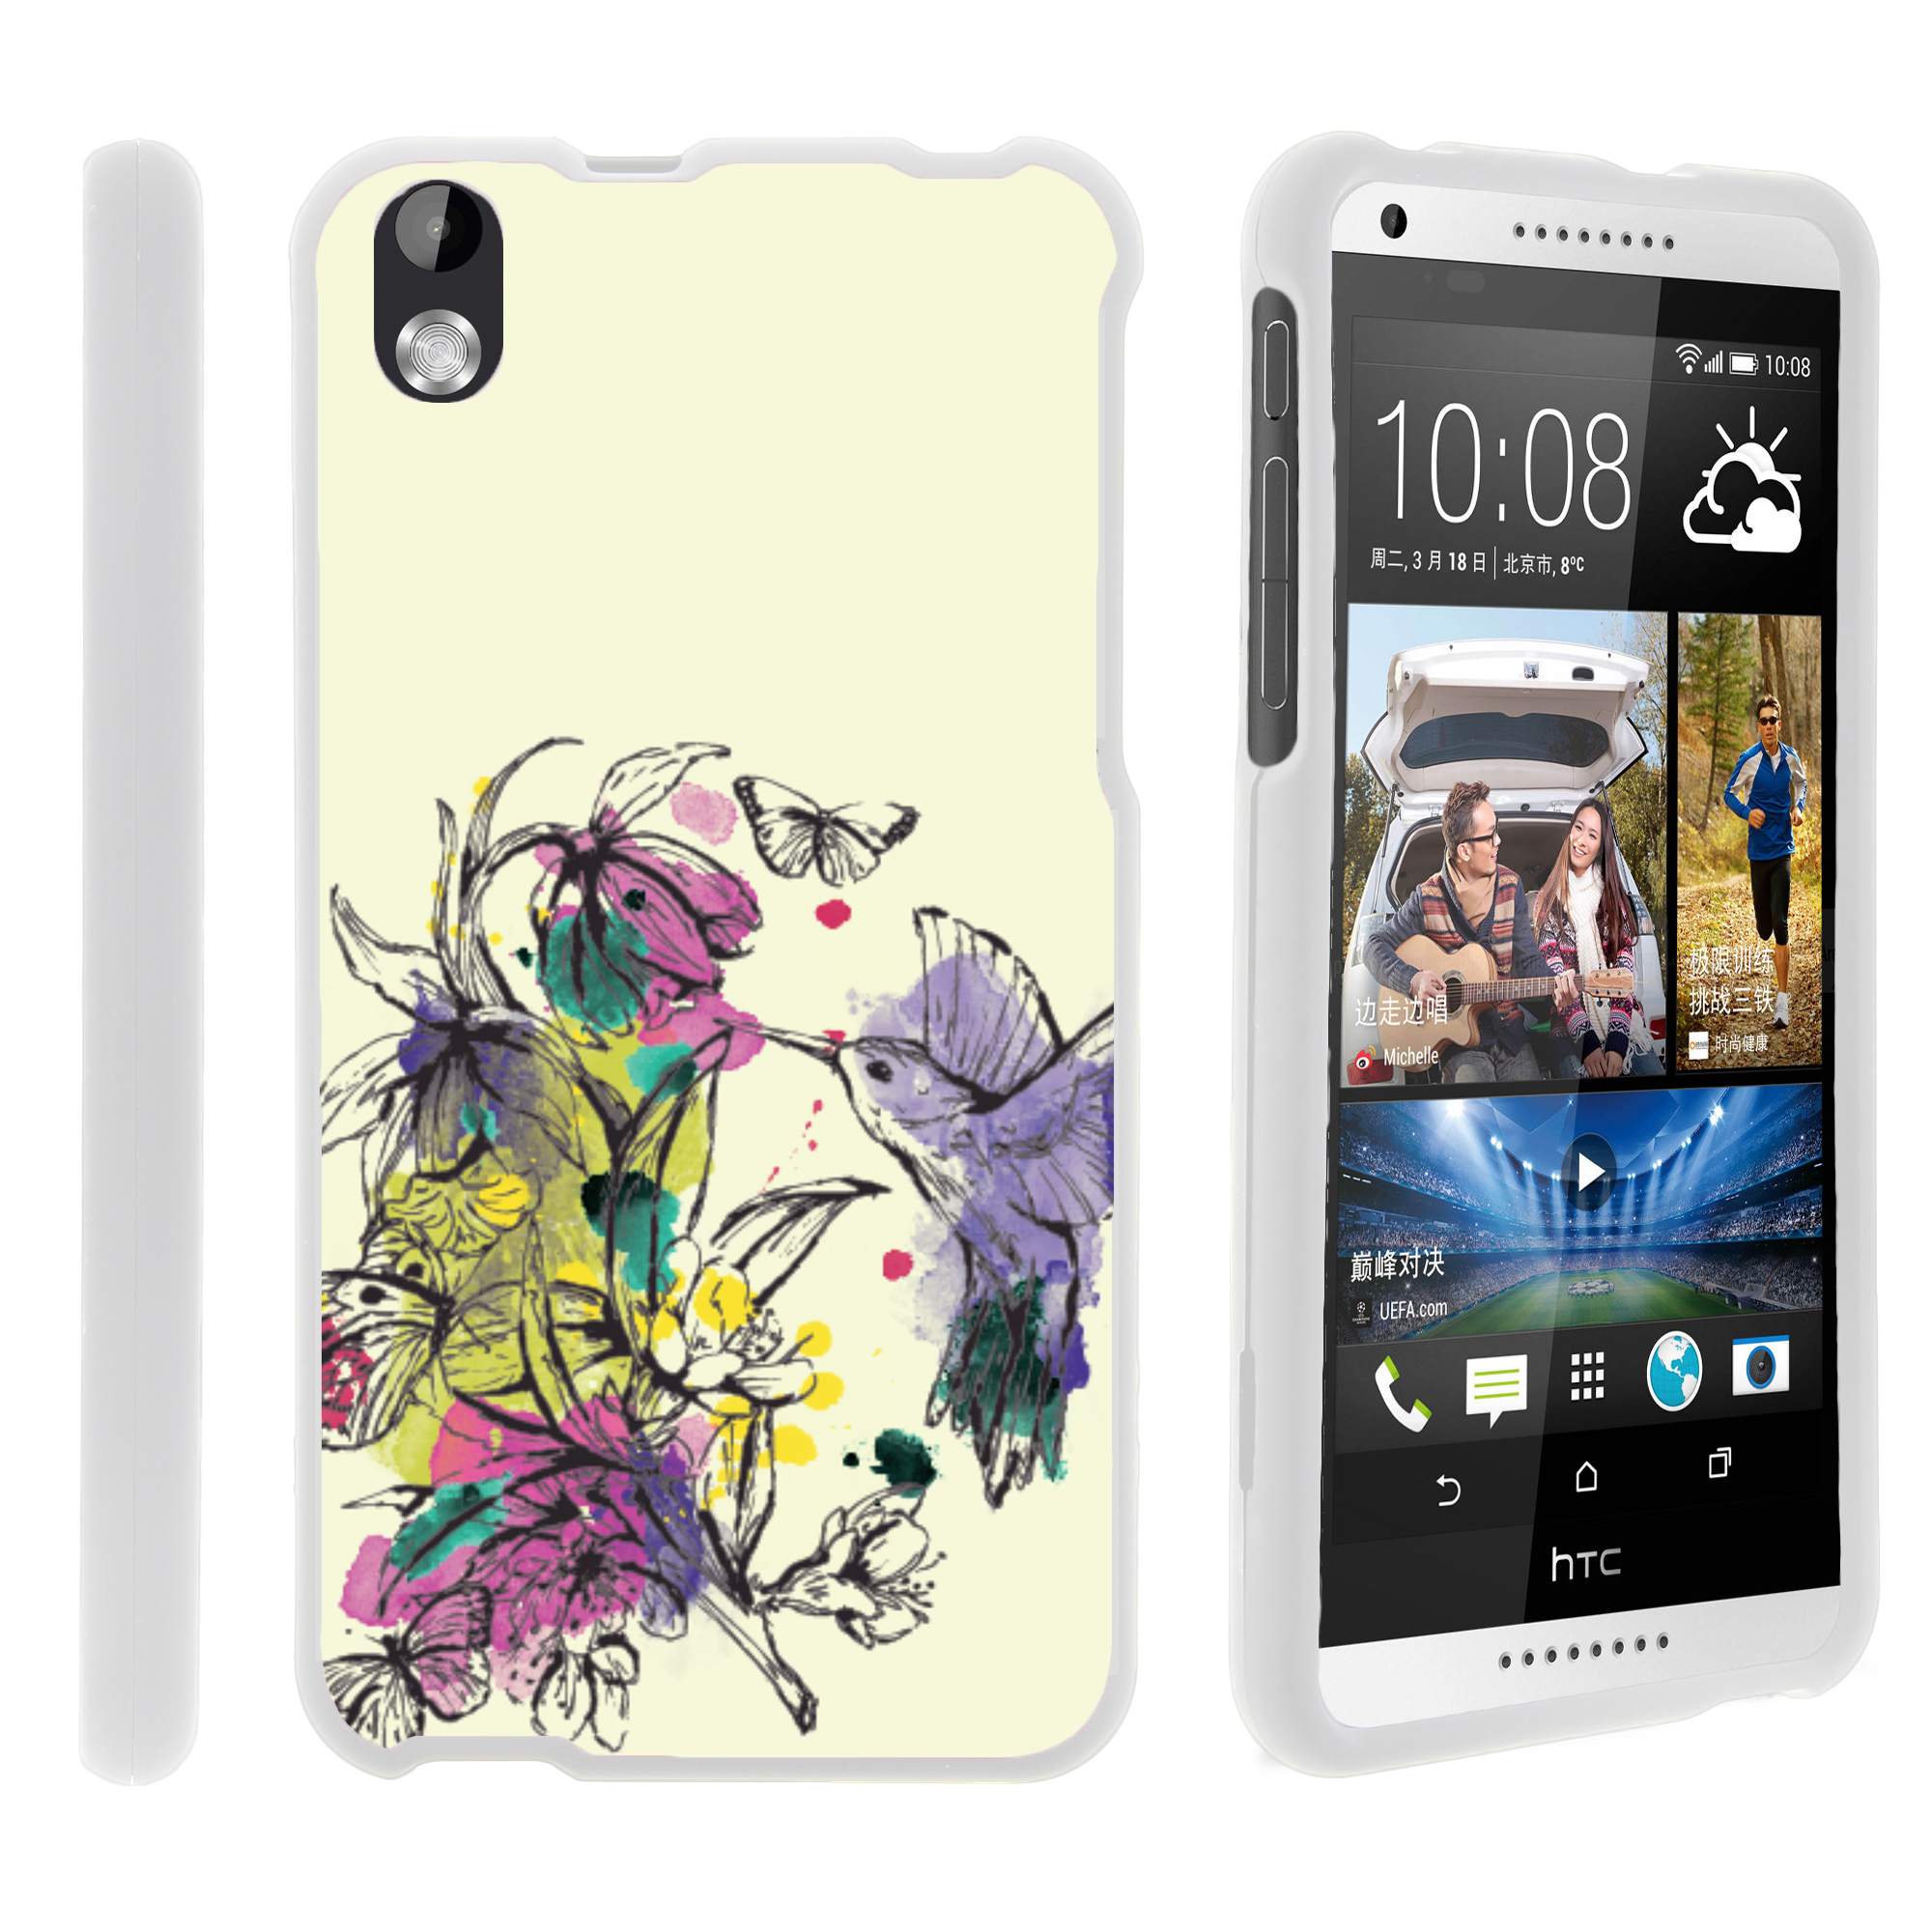 HTC Desire 816, [SNAP SHELL][White] Hard White Plastic Case with Non Slip Matte Coating with Custom Designs - Hummingbird Flowers